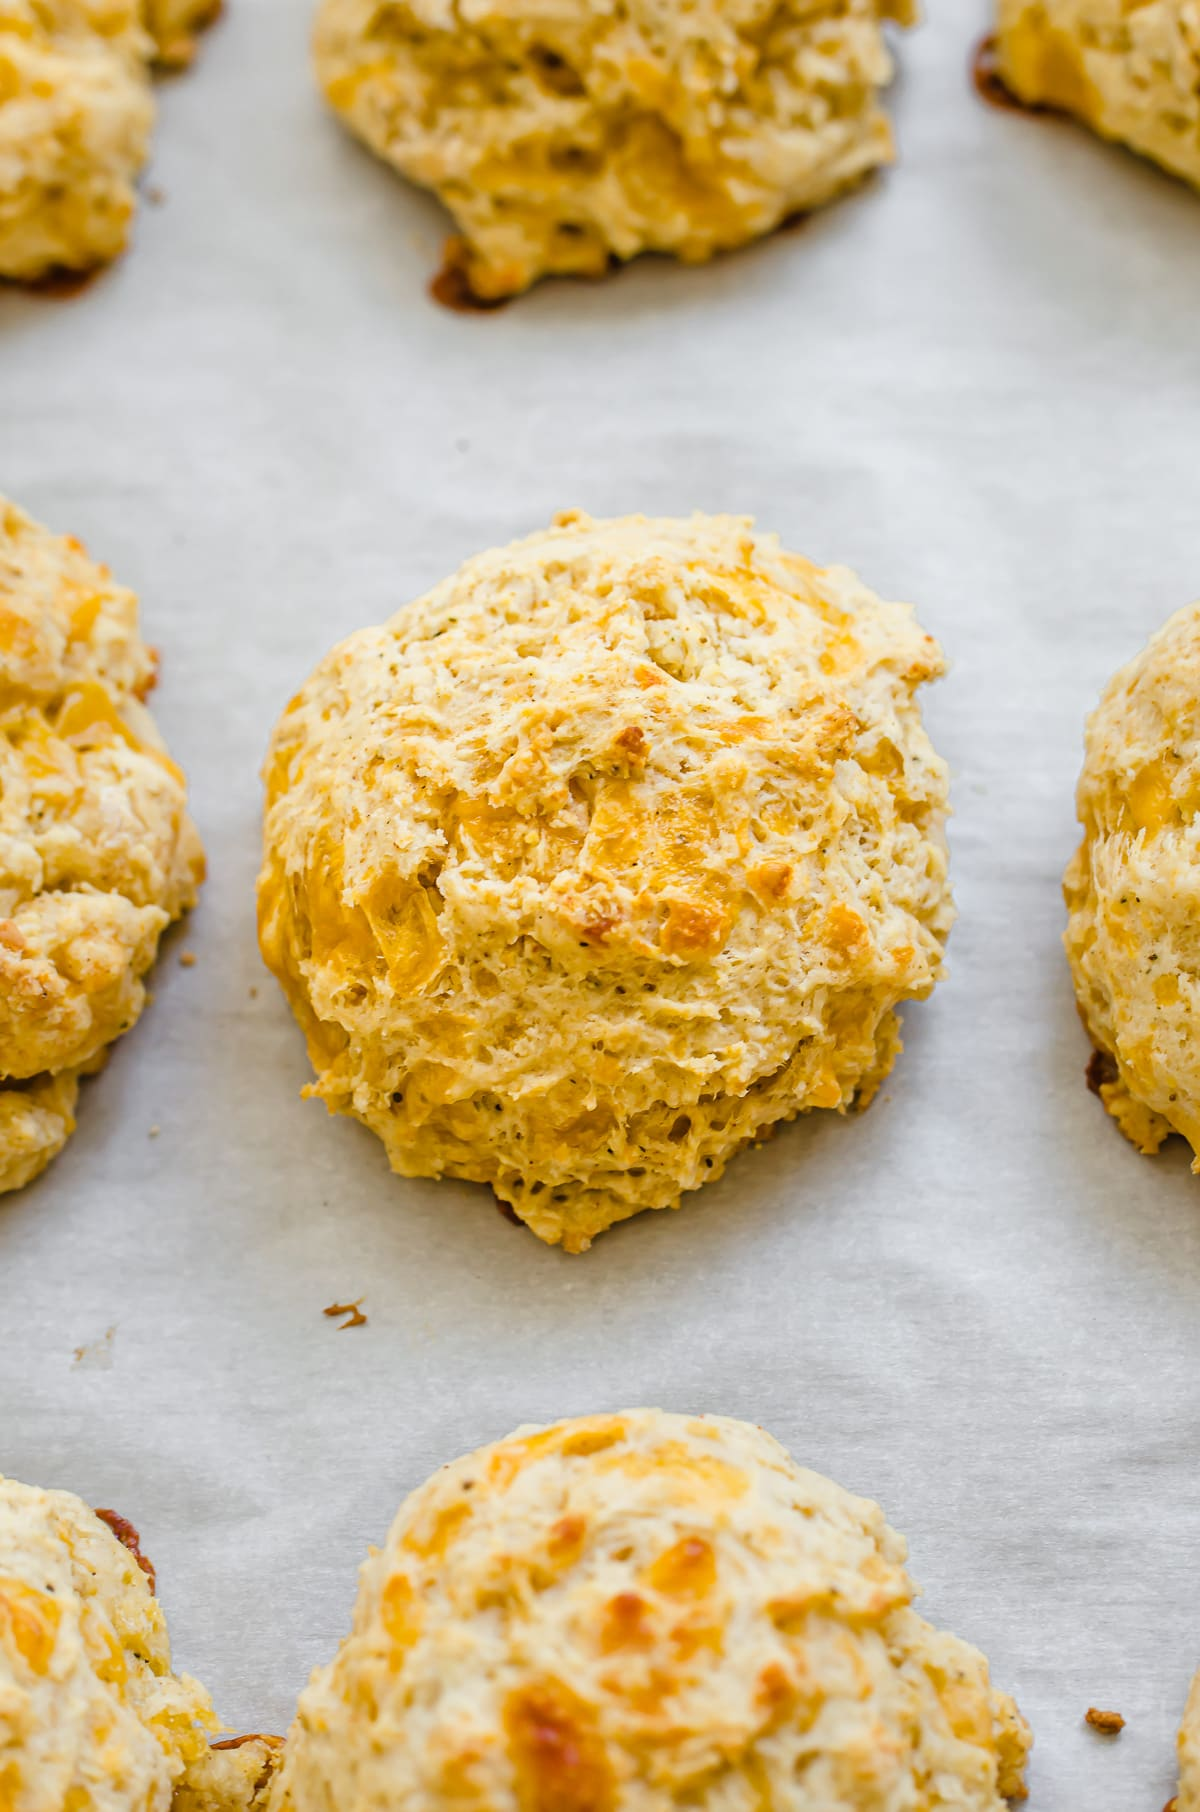 Cheddar bay biscuits on parchment paper.